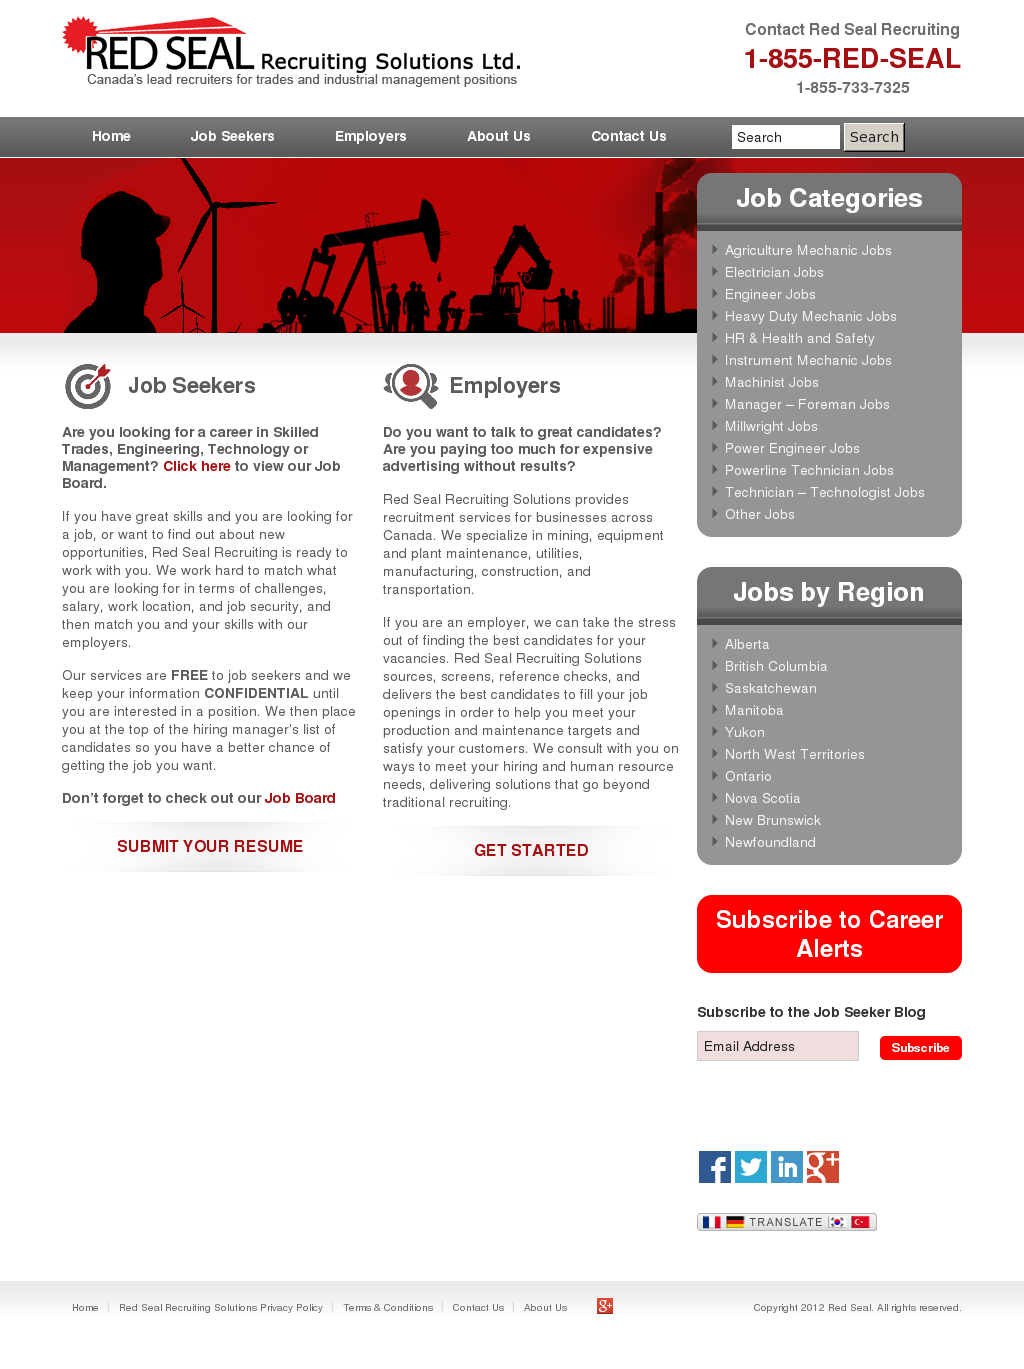 Red Seal Recruiting Solutions Competitors, Revenue and